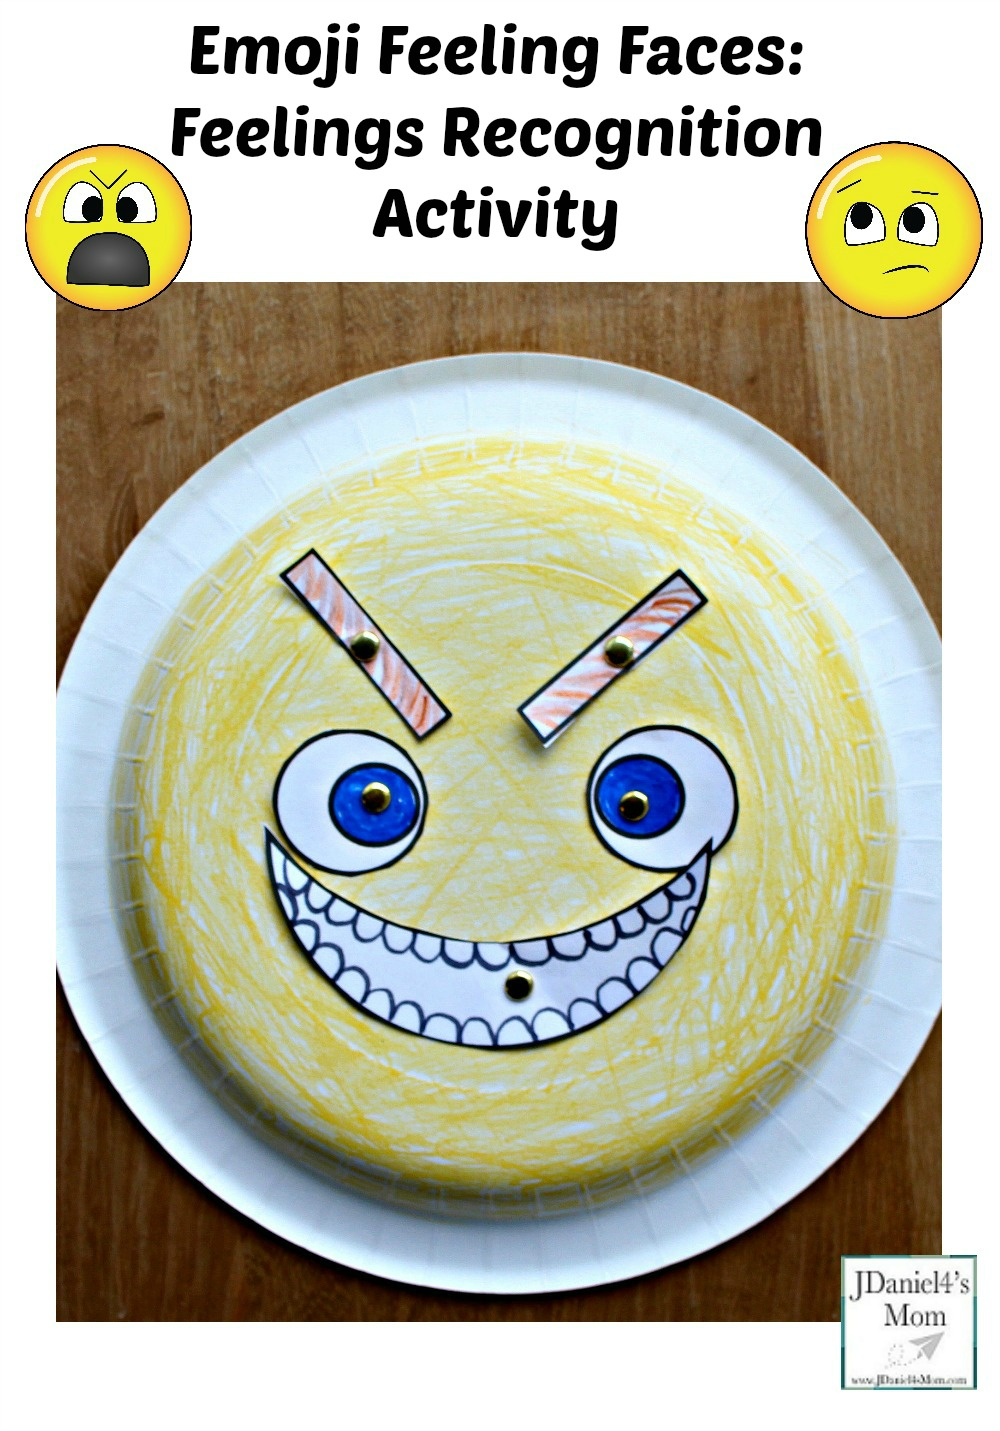 Emoji Feeling Faces Feeling Recognition Activity - The paper plate craft and activity is a fun way for children to learn and understand feelings. Children at home or students at school can learn about what each feeling looks like. Children will have fun changing the face from one feeling to anther. You can call out feelings for your children to share or they can create a face and tell you what it displays.